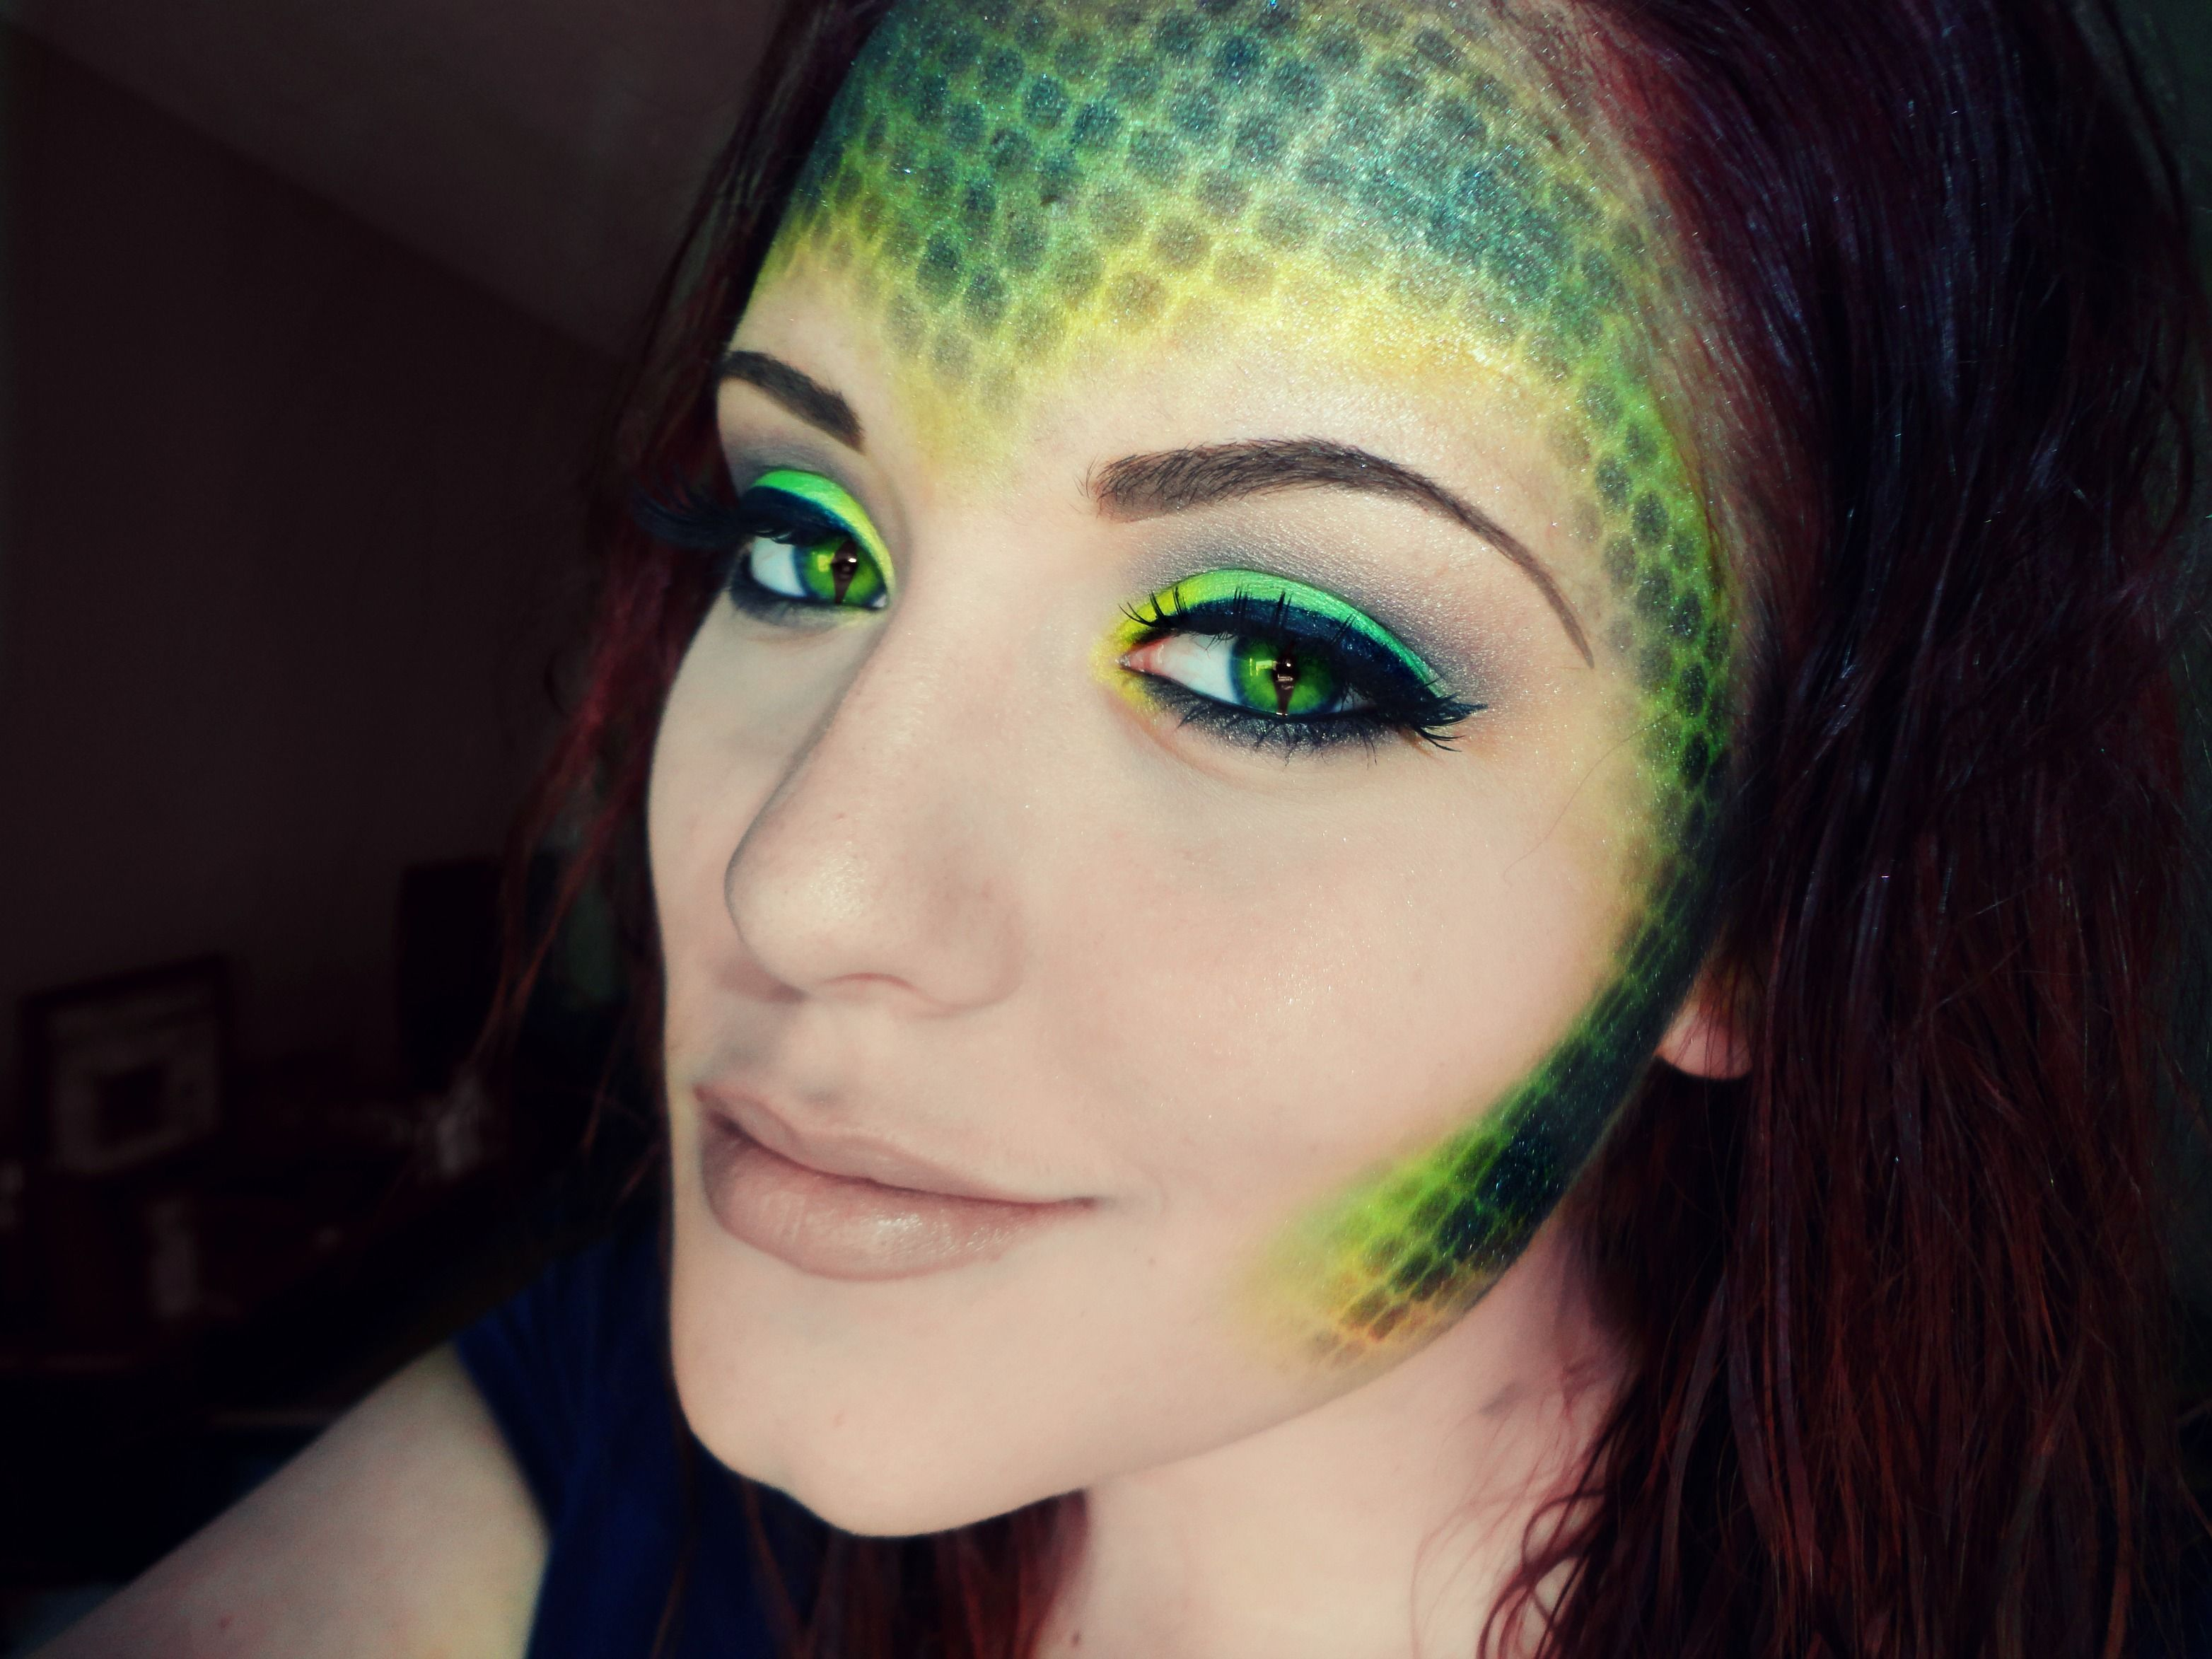 snake makeup texture but to be on cheeks (With images